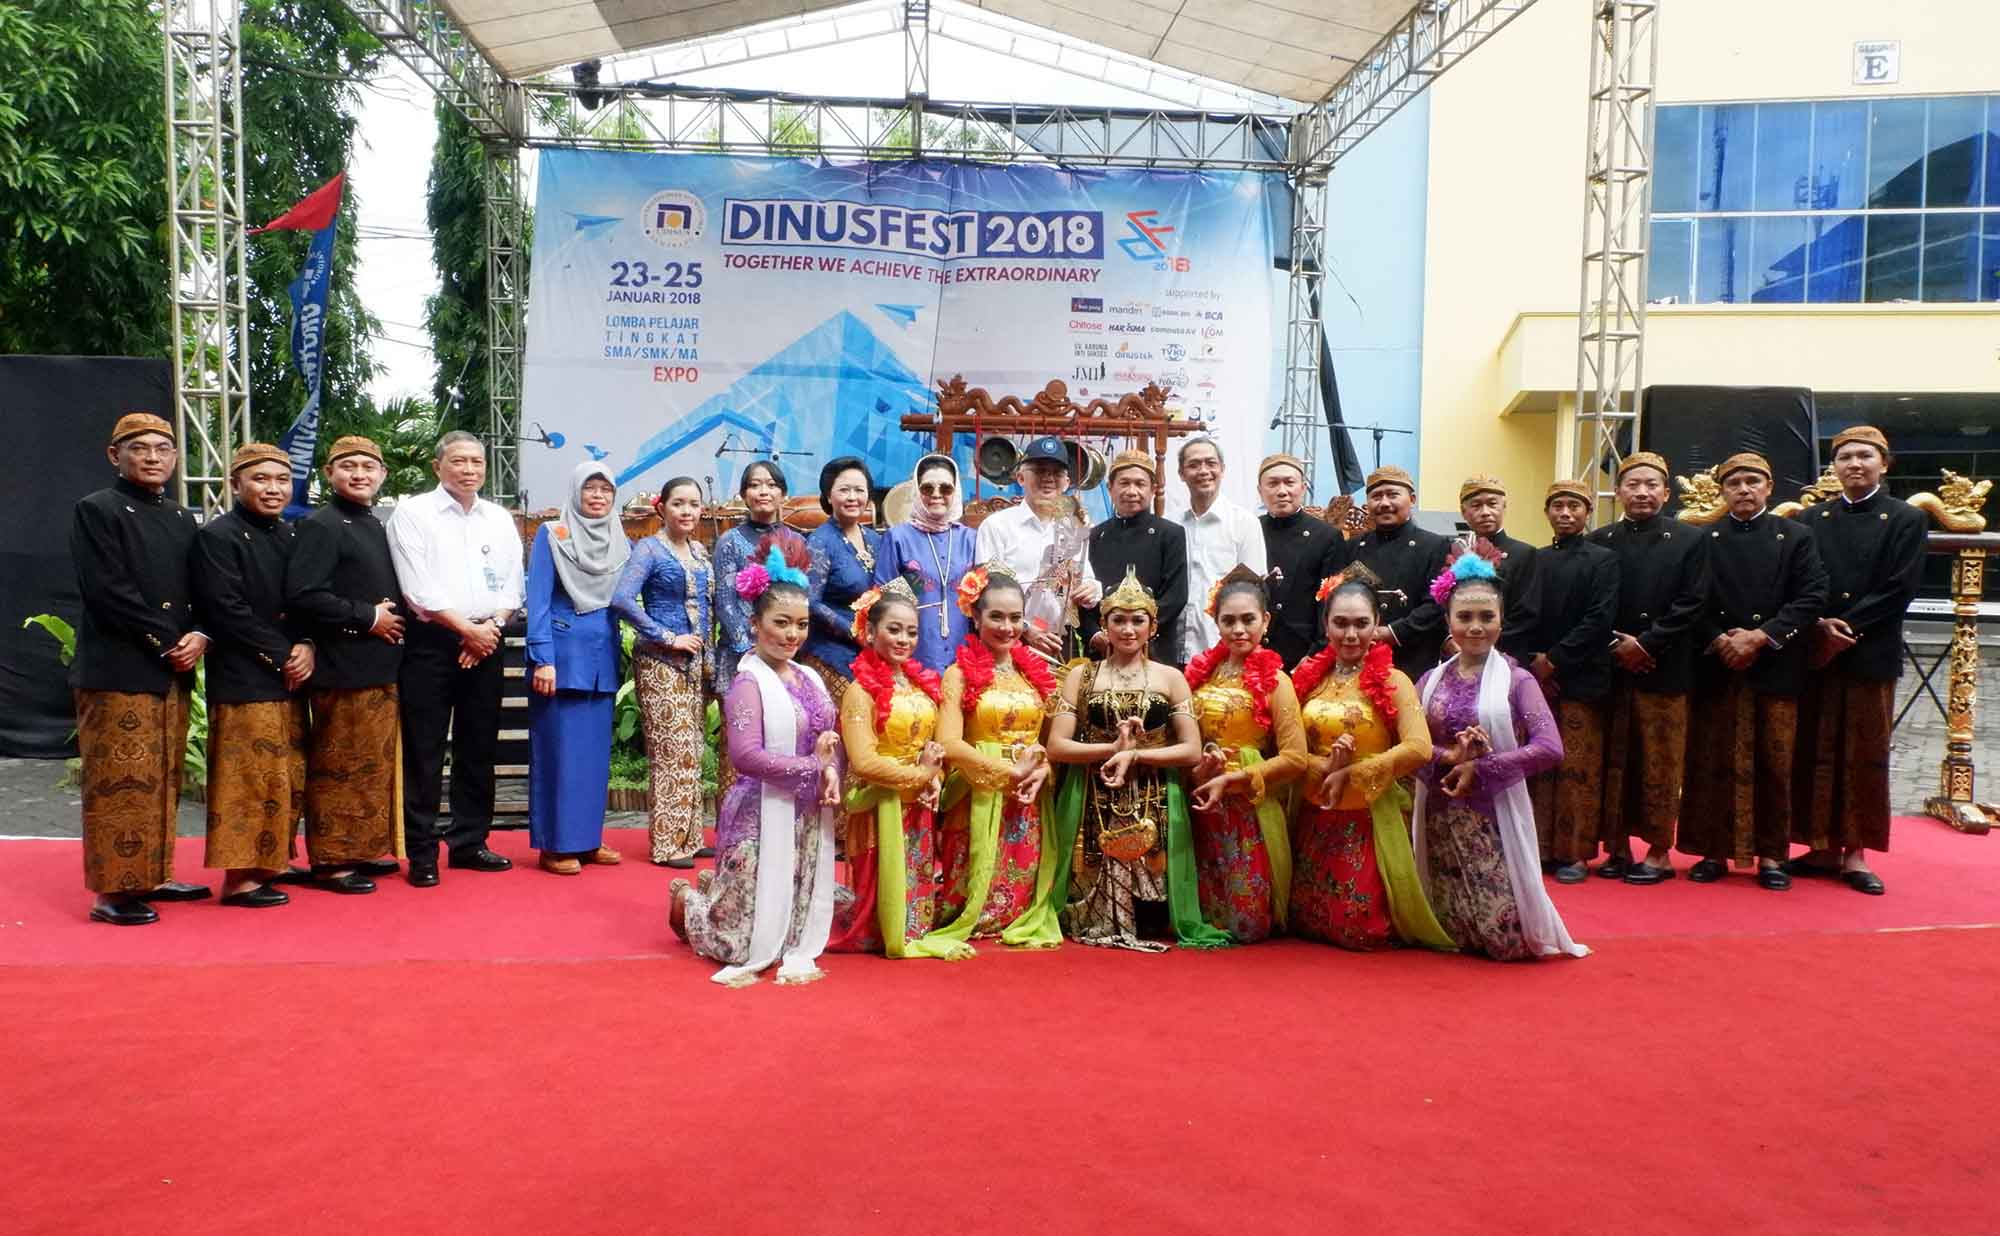 BEFORE LEAVING TO UNESCO, E-GAMELANKU TEAM OPEN DINUSFEST 2018